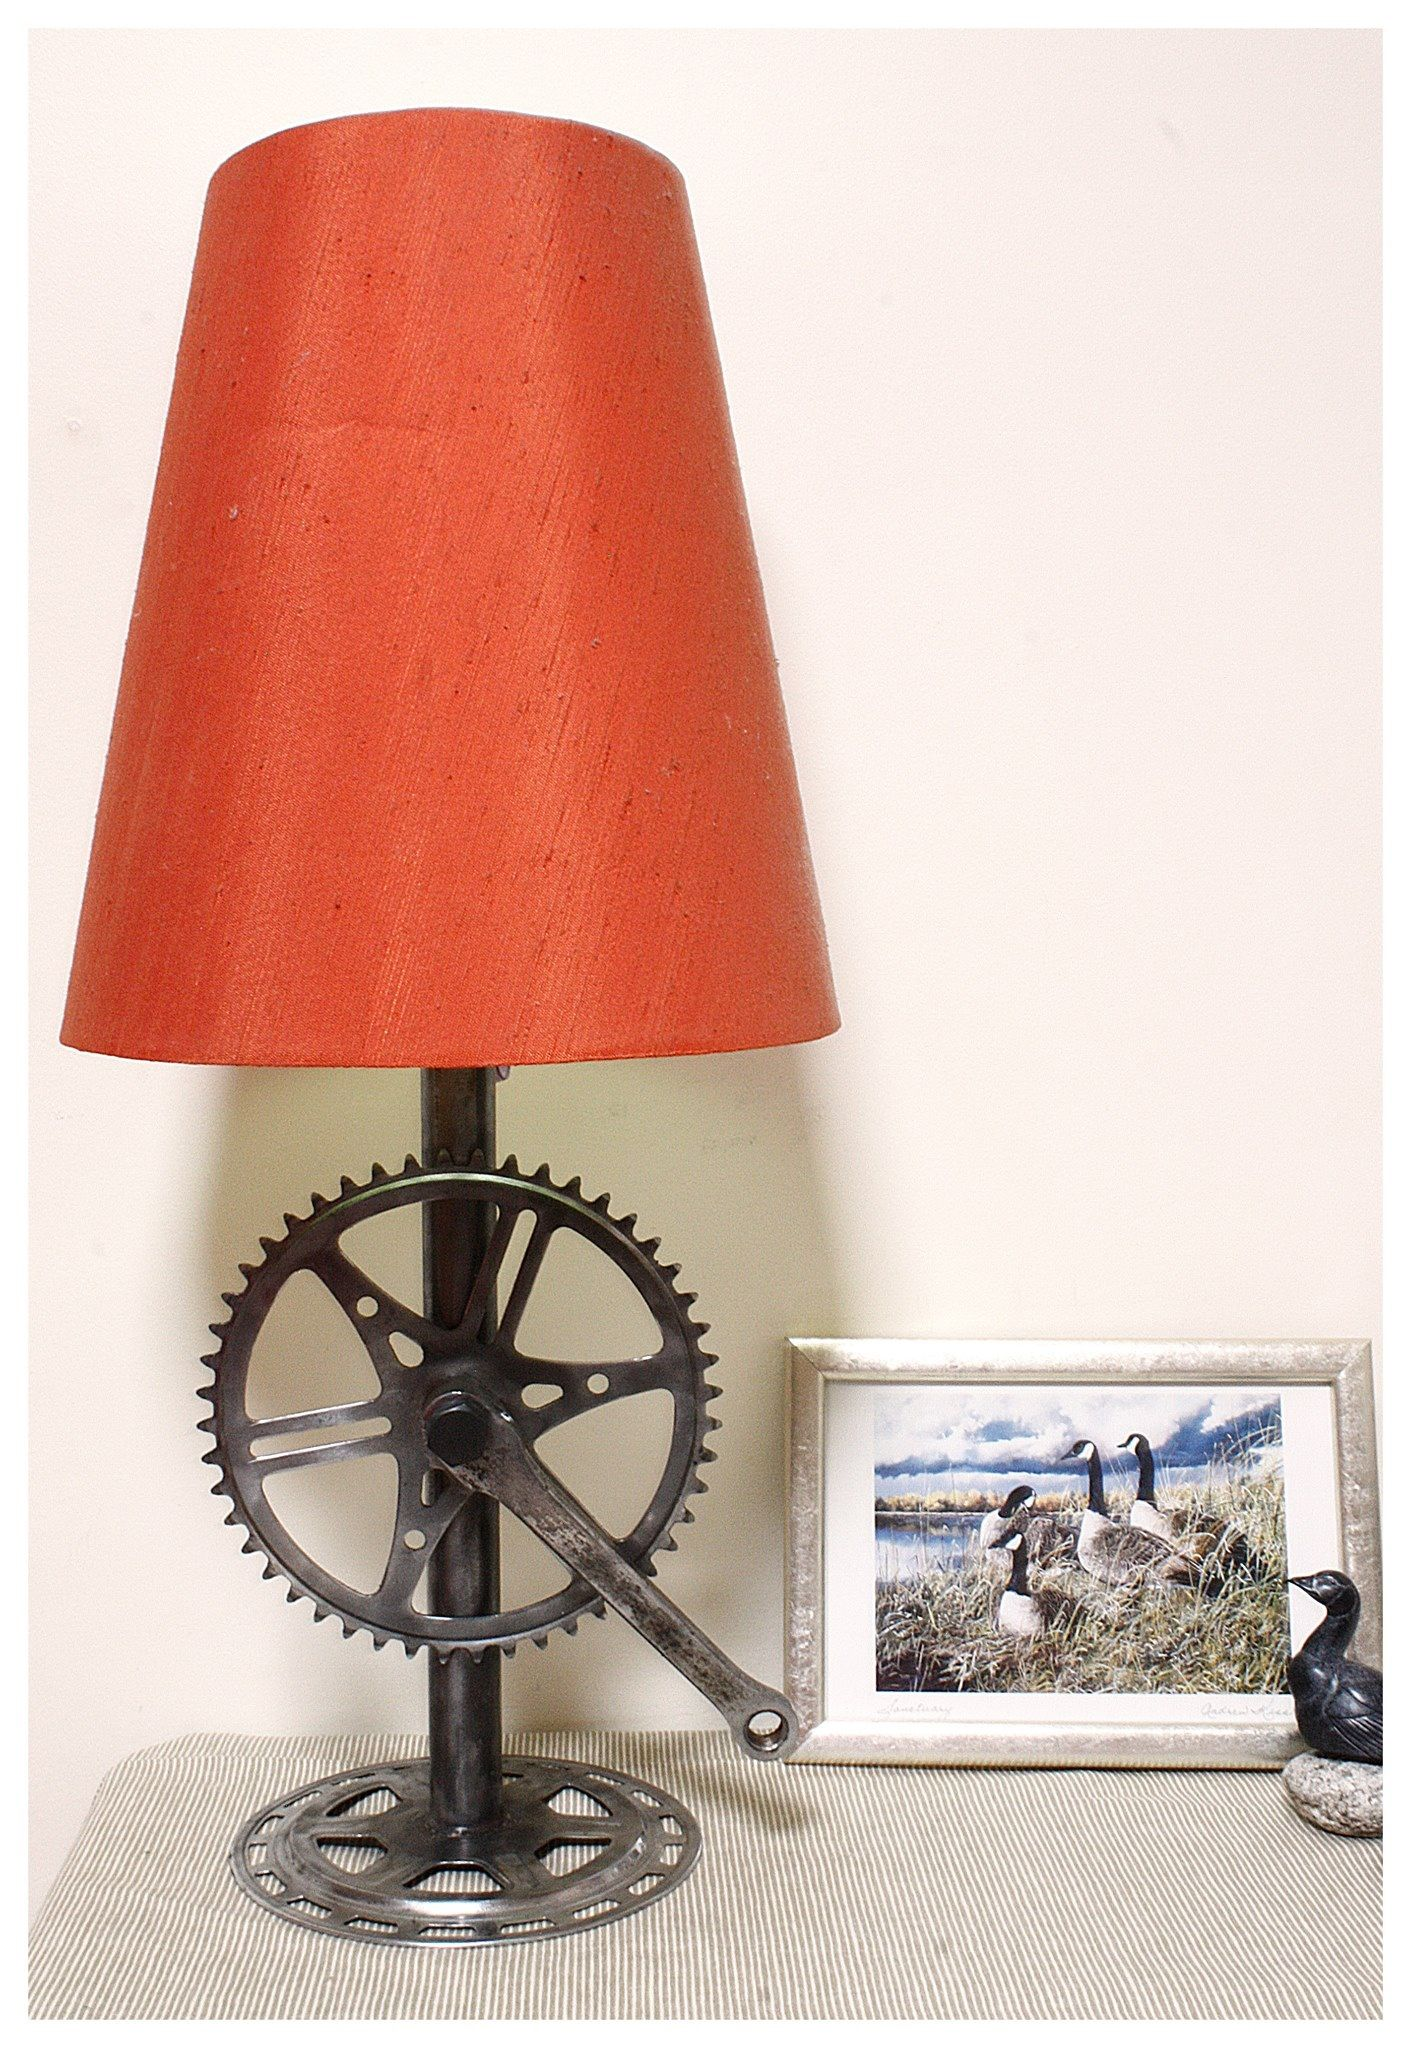 Recycled bike parts lamp base | For the Home | Pinterest | Lamp ...